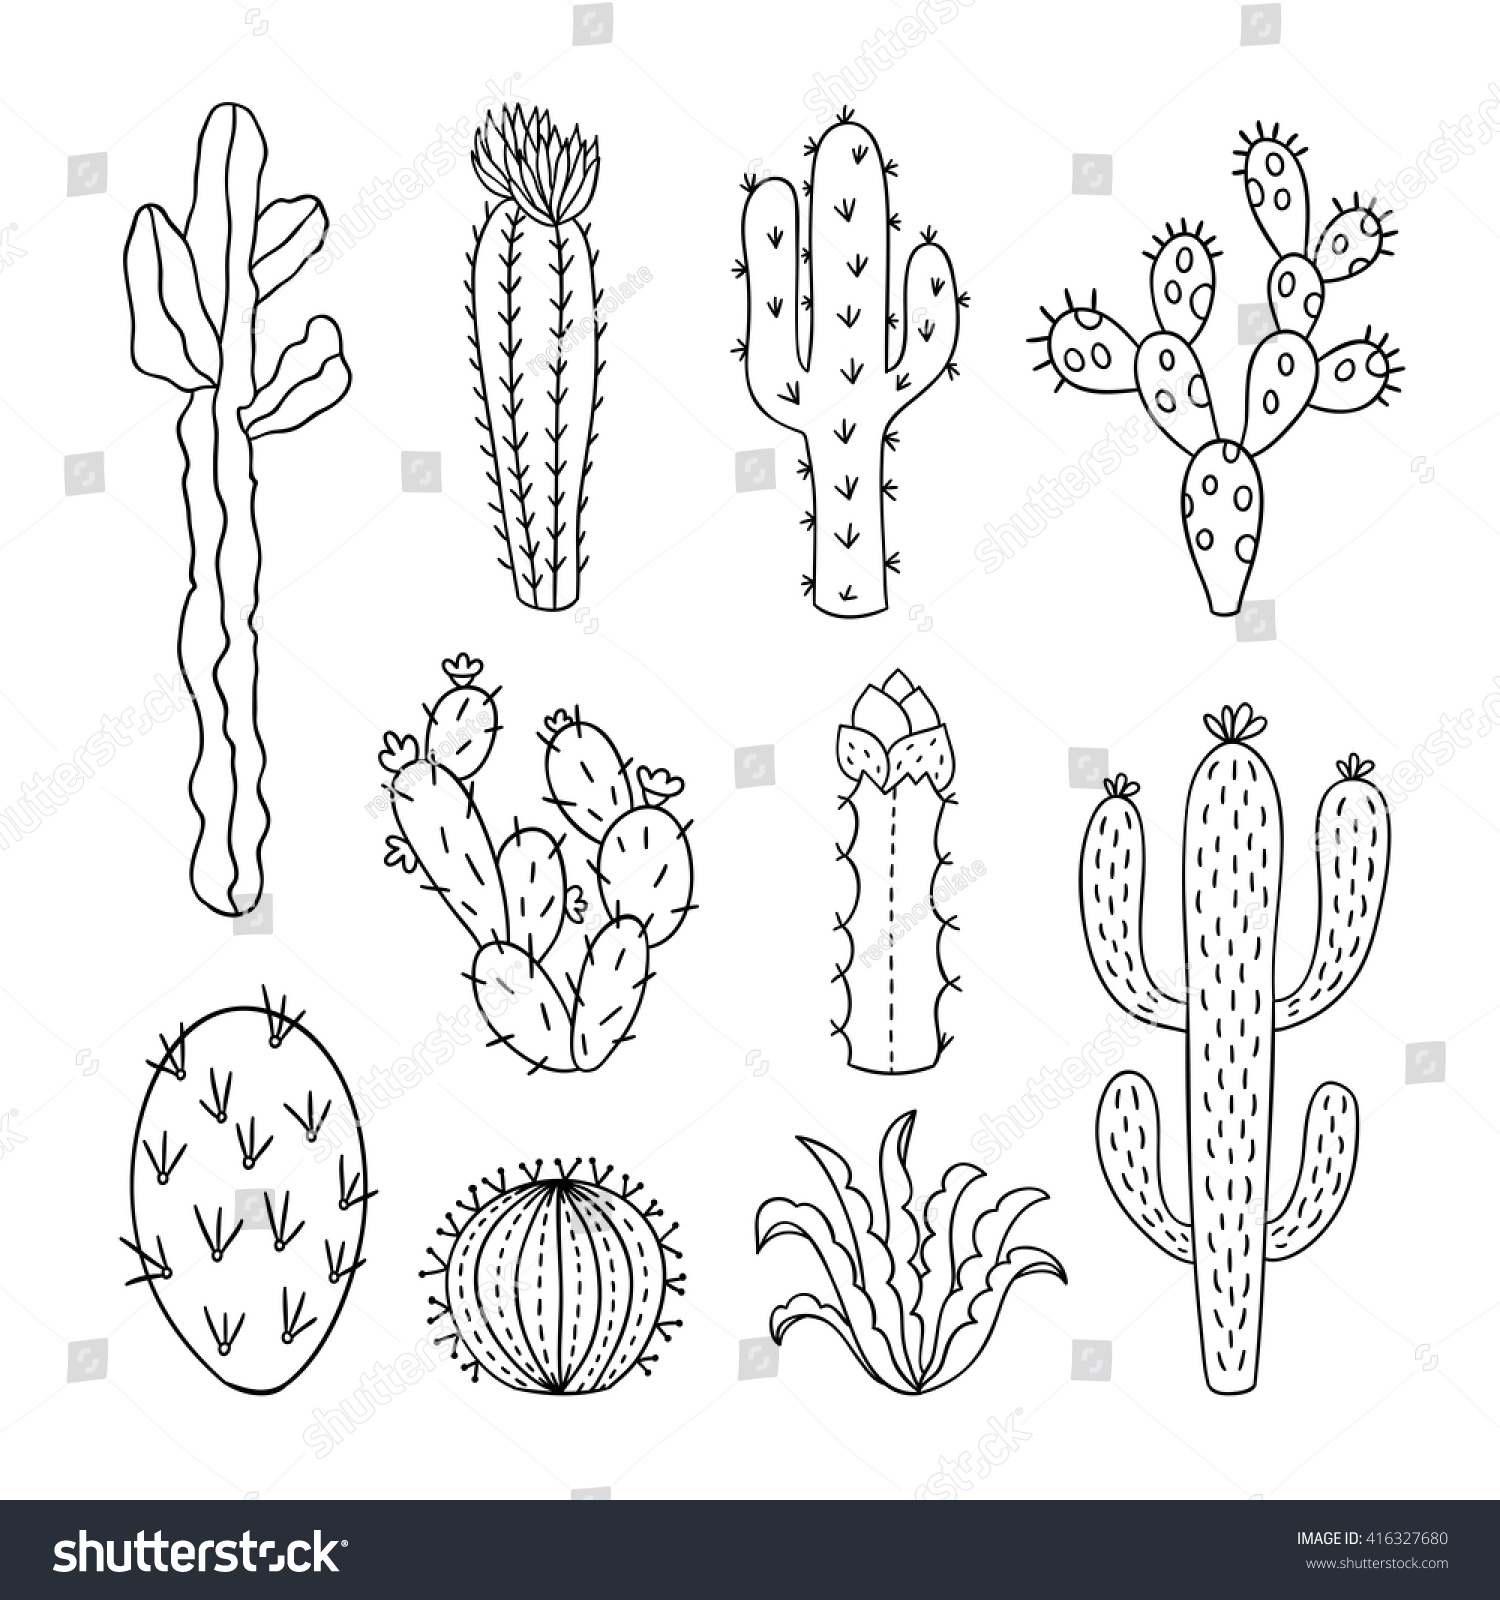 Cactus Vector Illustrations Hand Drawn Outline Stock